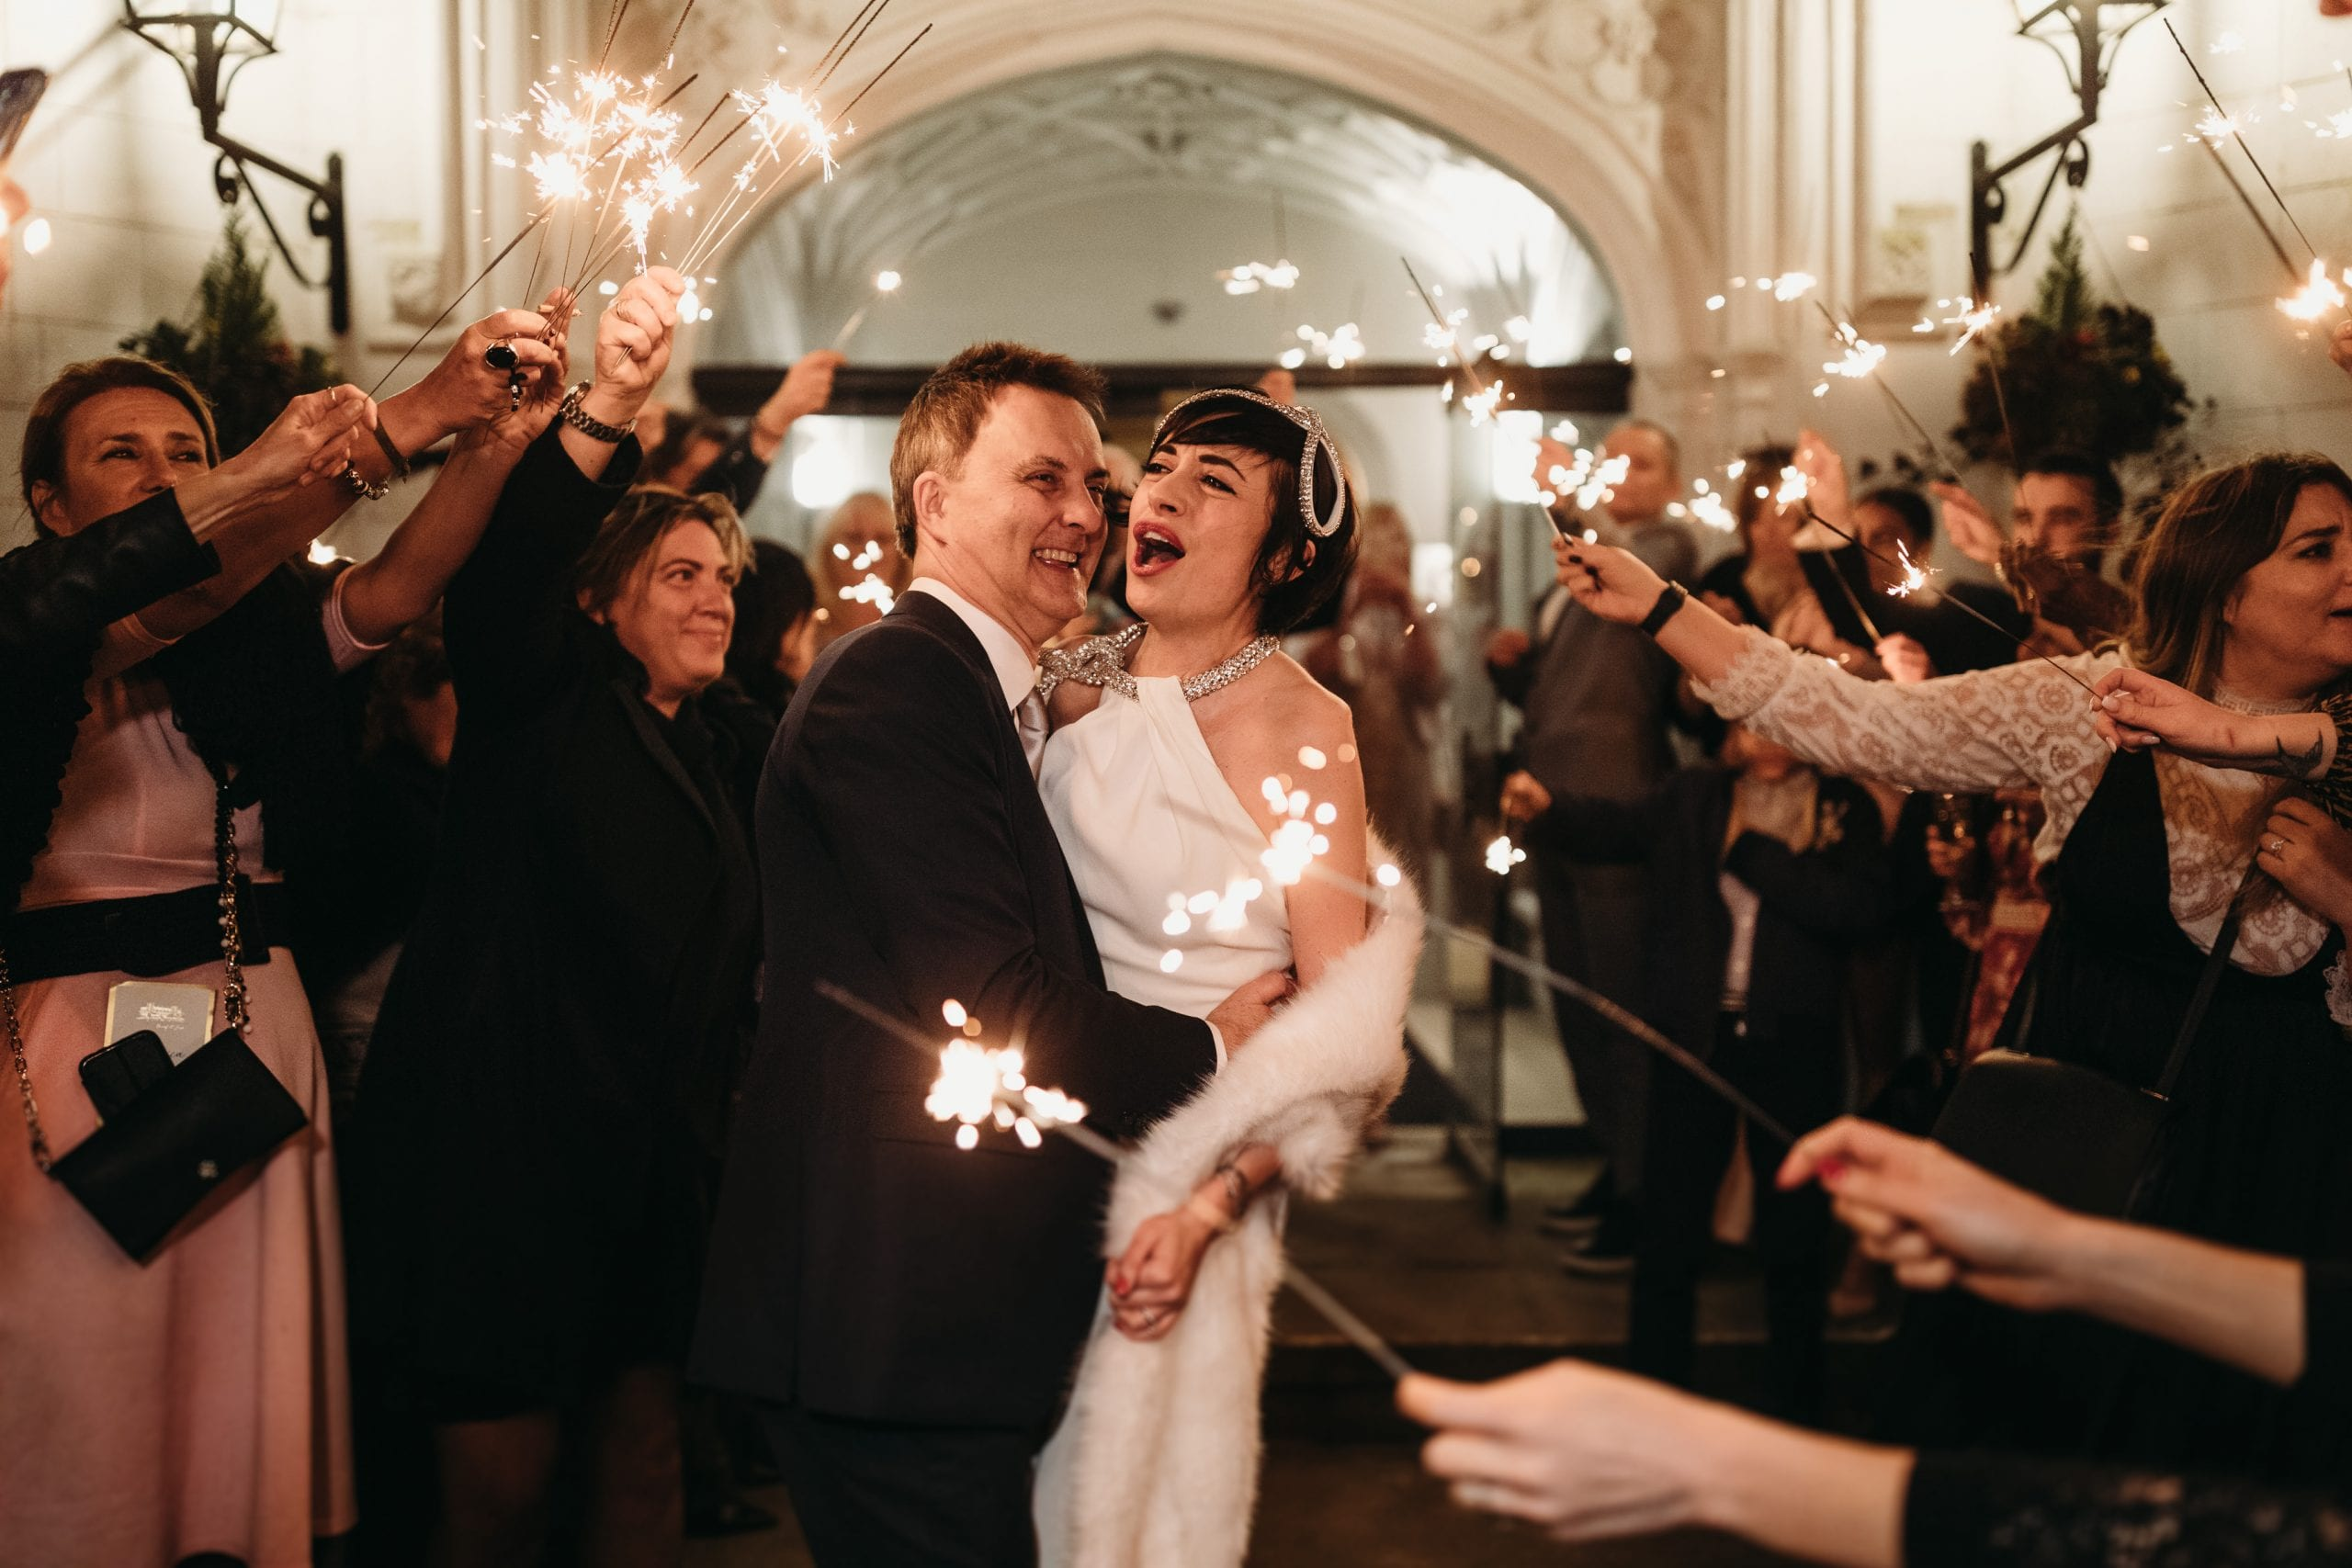 sparklers photo of bride and groomat a portrait of brisparkler photo of bride and groom at a Danesfield House wedding